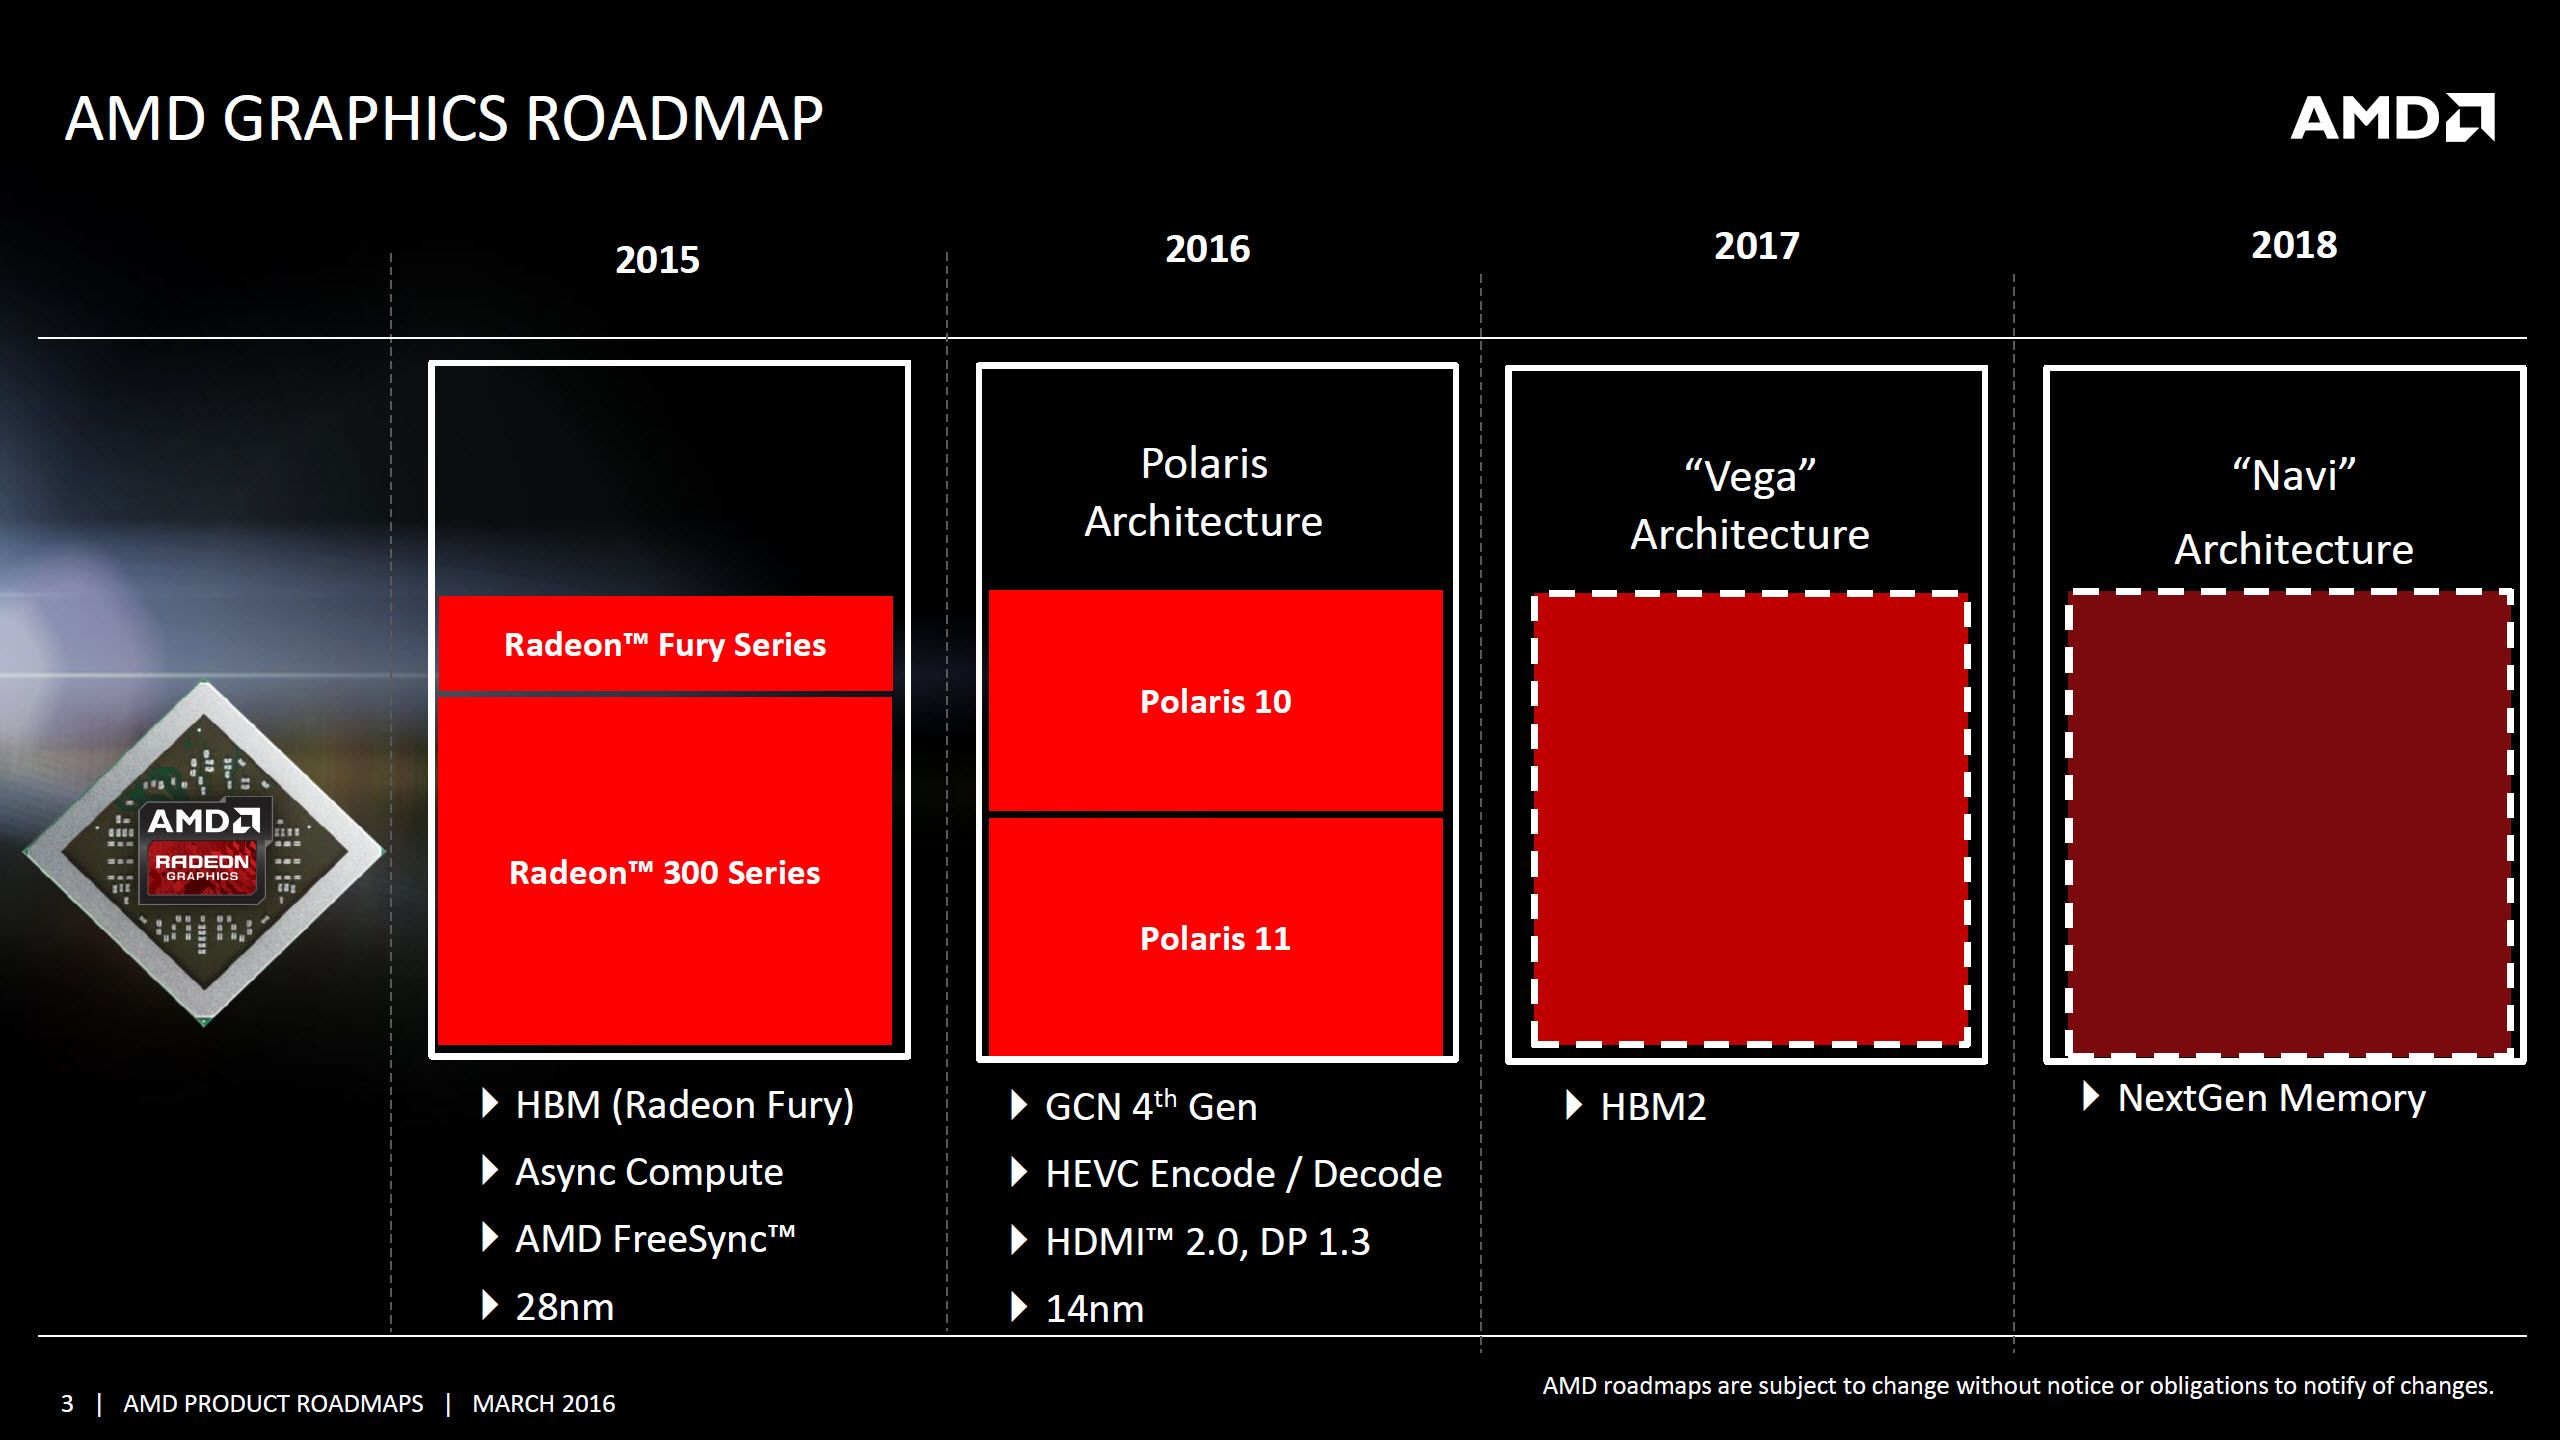 High End Amd Navi 20 Gpus May Not Arrive Until 2020 Providing No Competition For Nvidia And Its Increasing Prices Amd Roadmap Vega